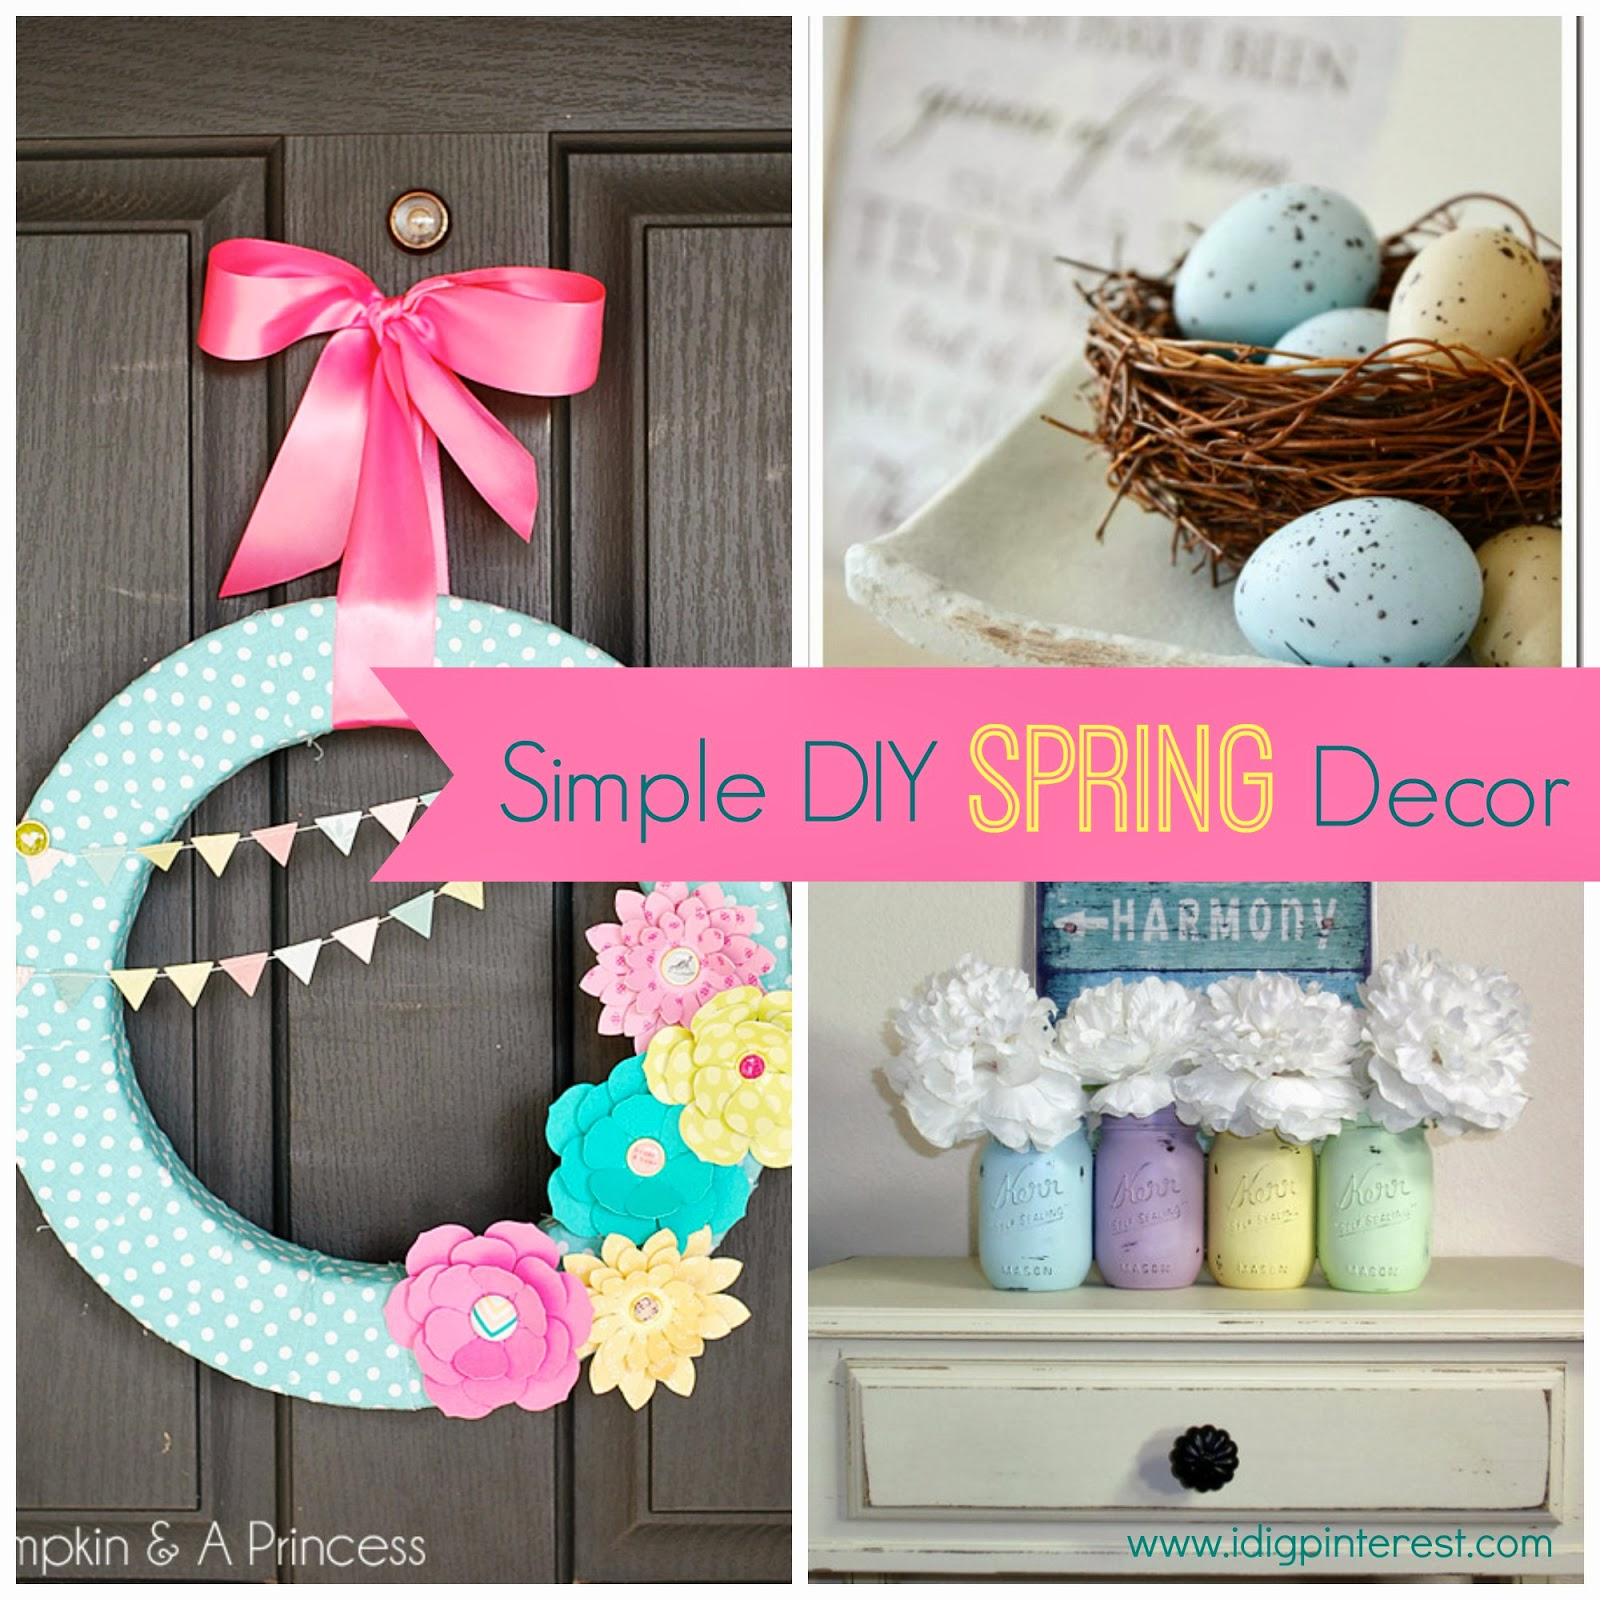 Simple diy spring decor ideas i dig pinterest for Pinterest diy decor ideas